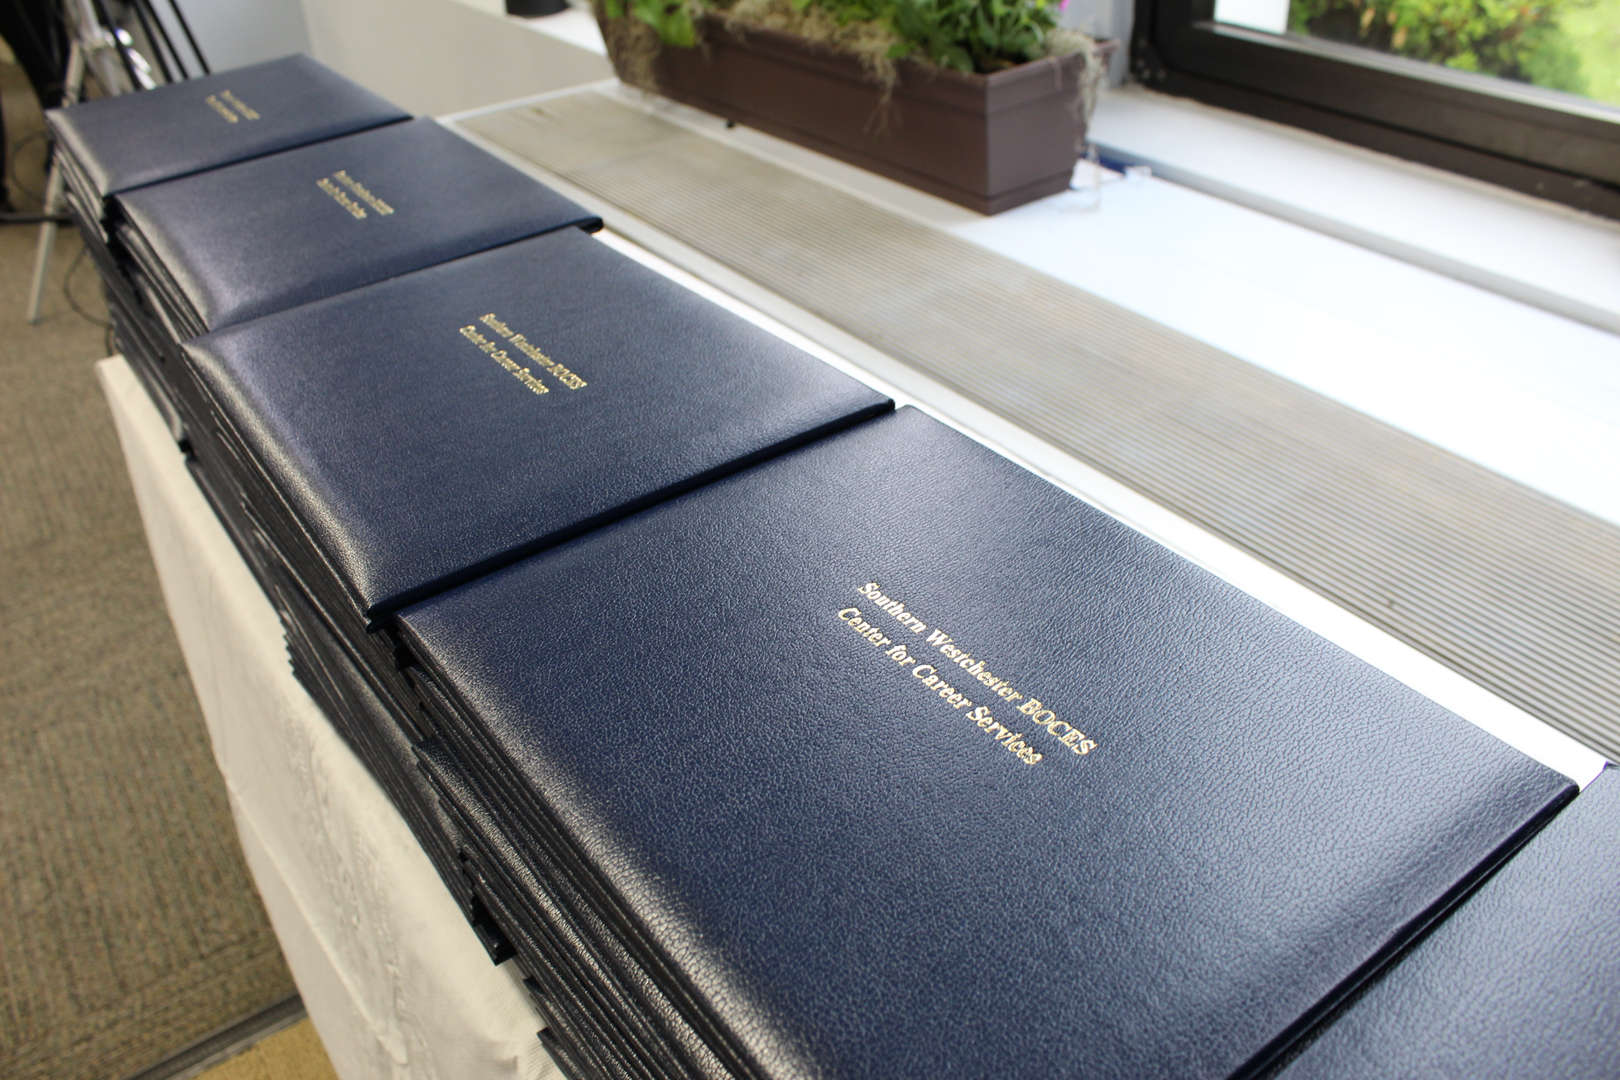 Row of diploma covers